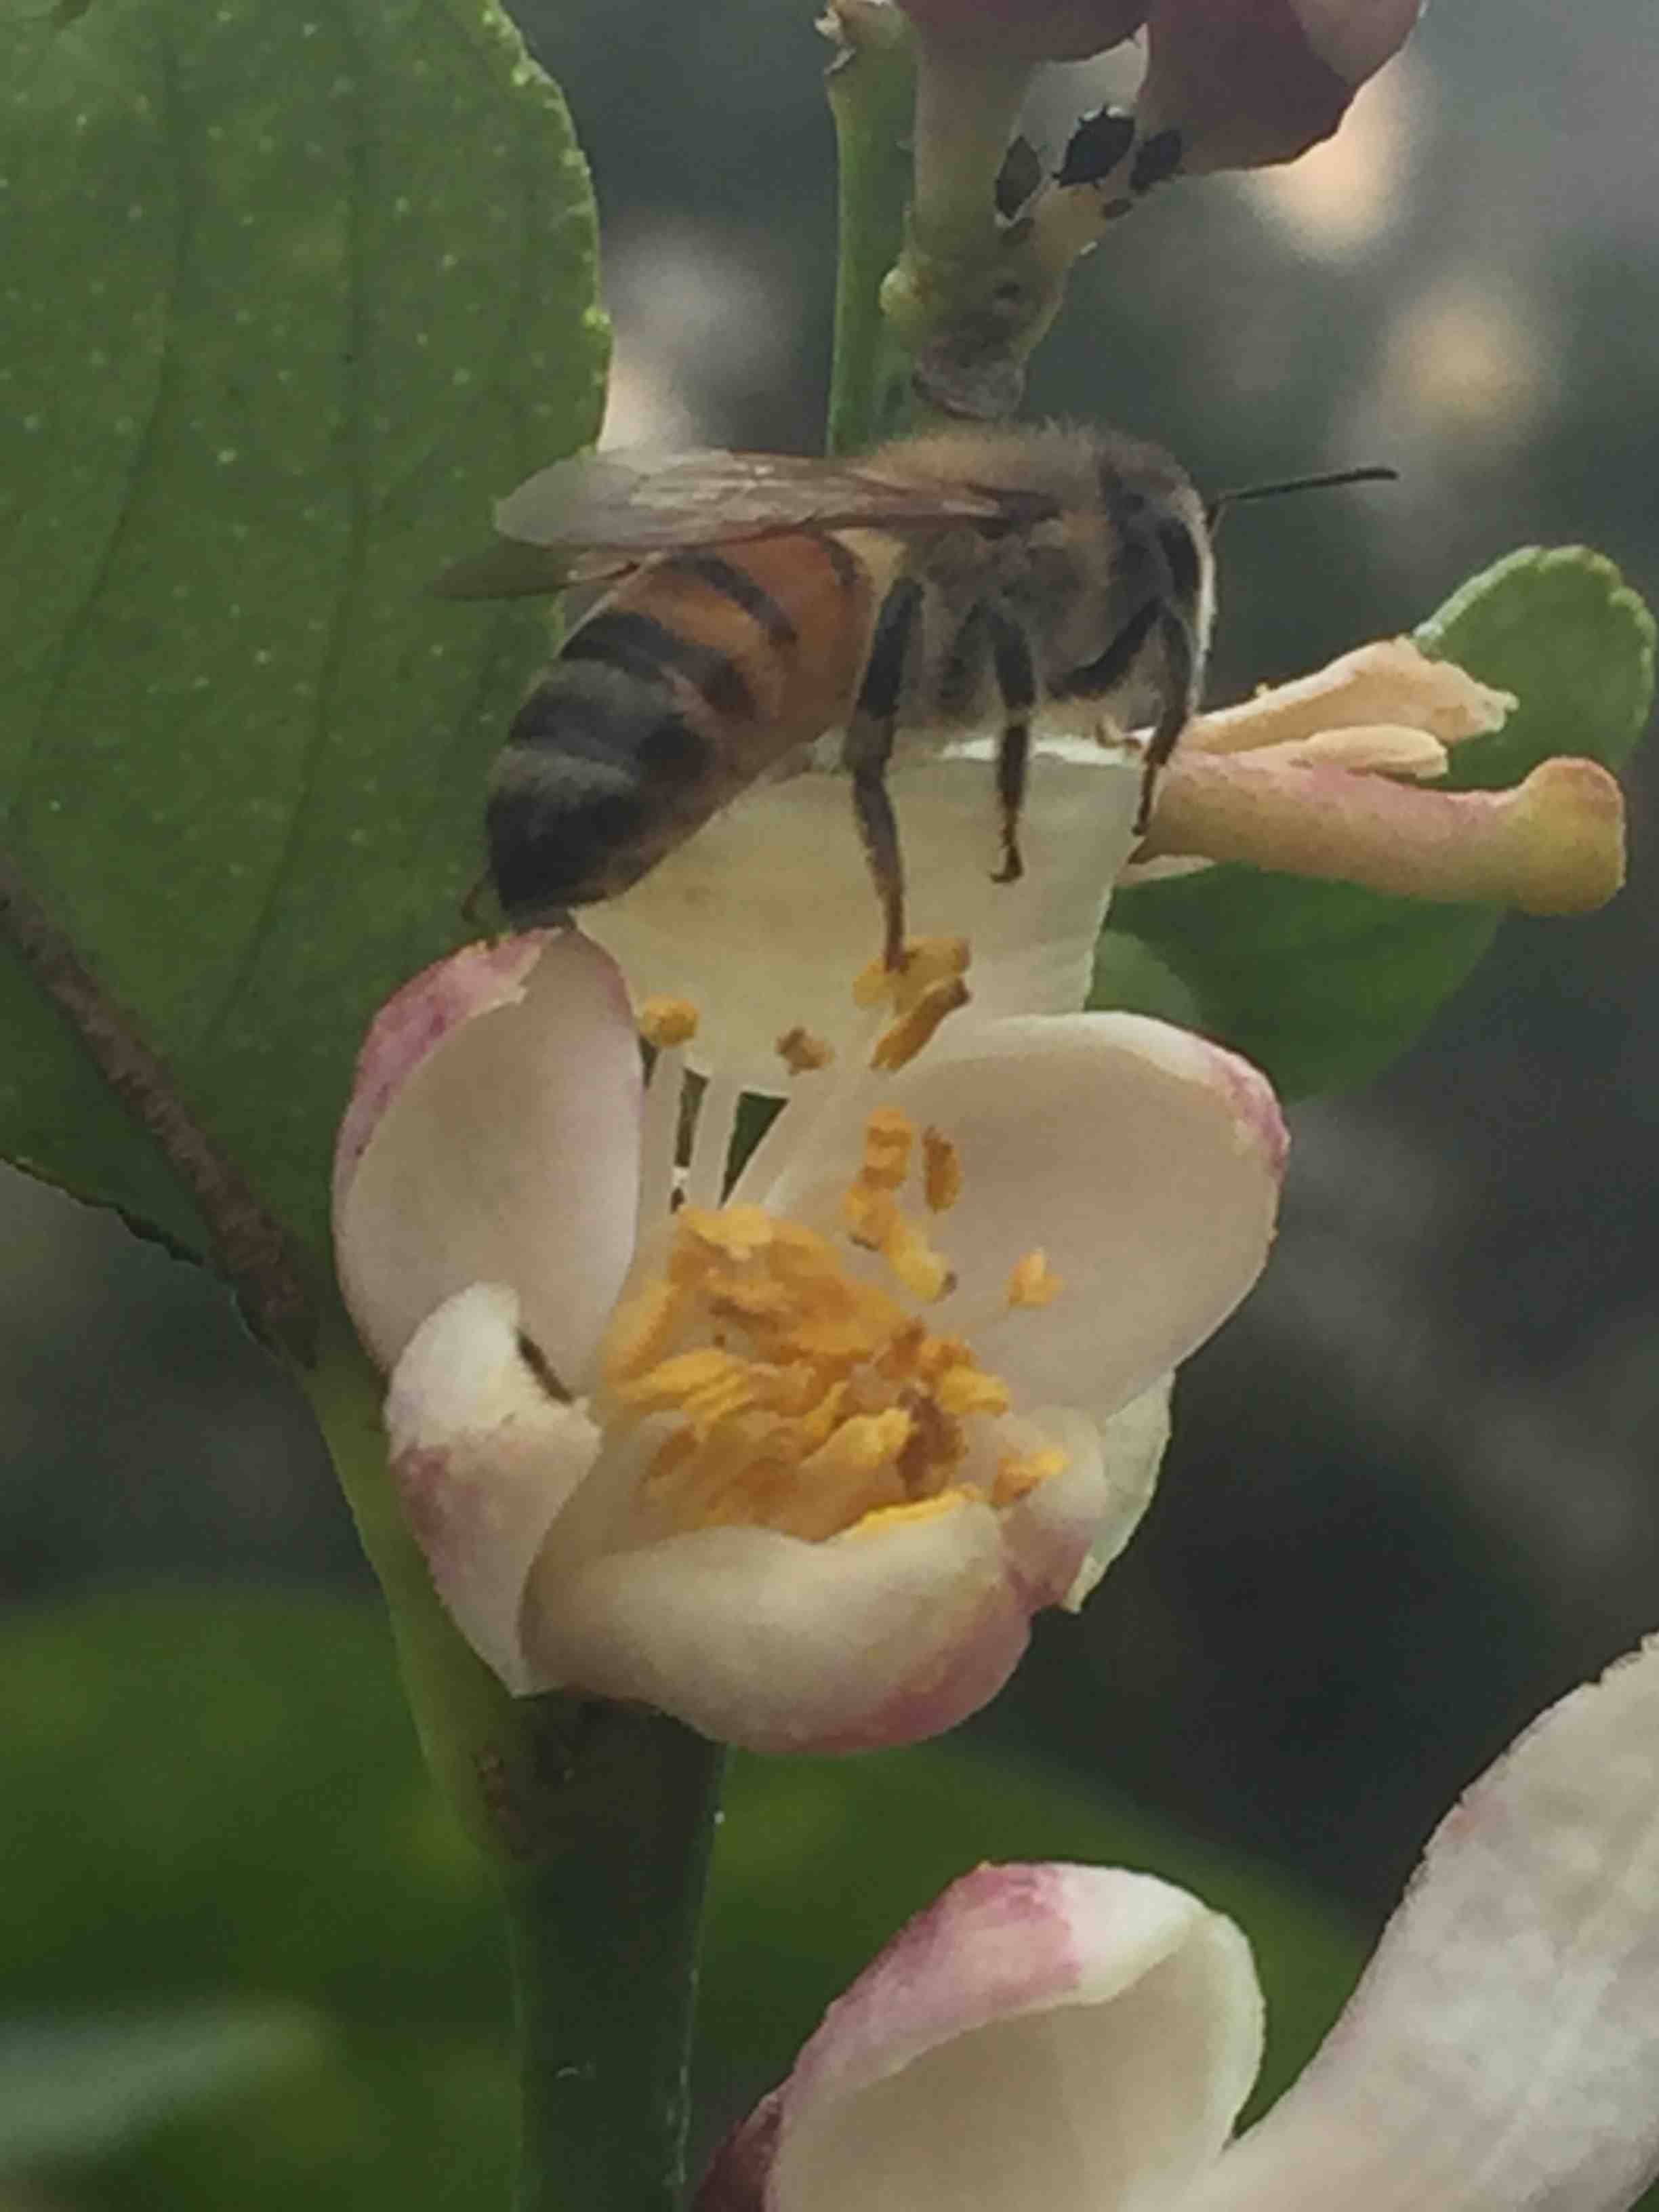 An incomparable honeybee napping on a lemon blossom petal, Hollywood Hills, California.